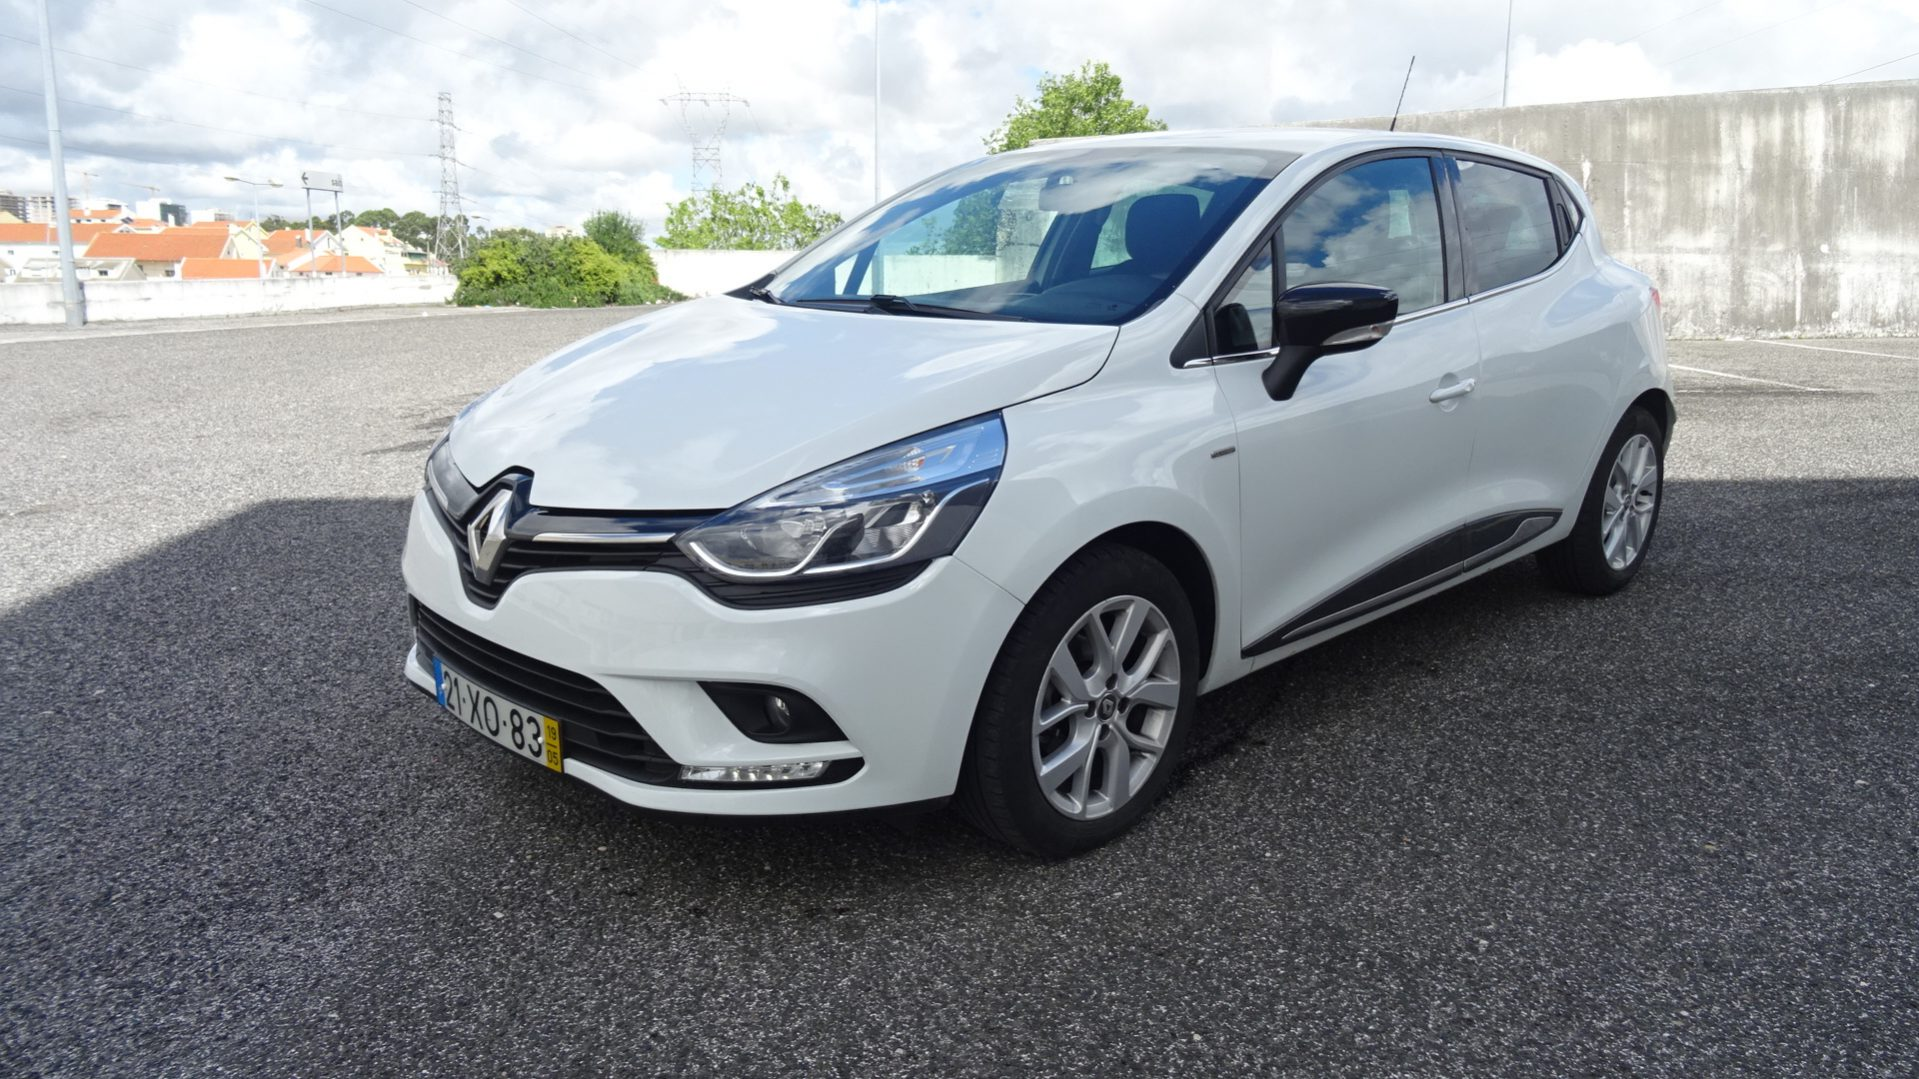 RENAULT Clio 0.9 TCe Limited Edition GPS (5p)